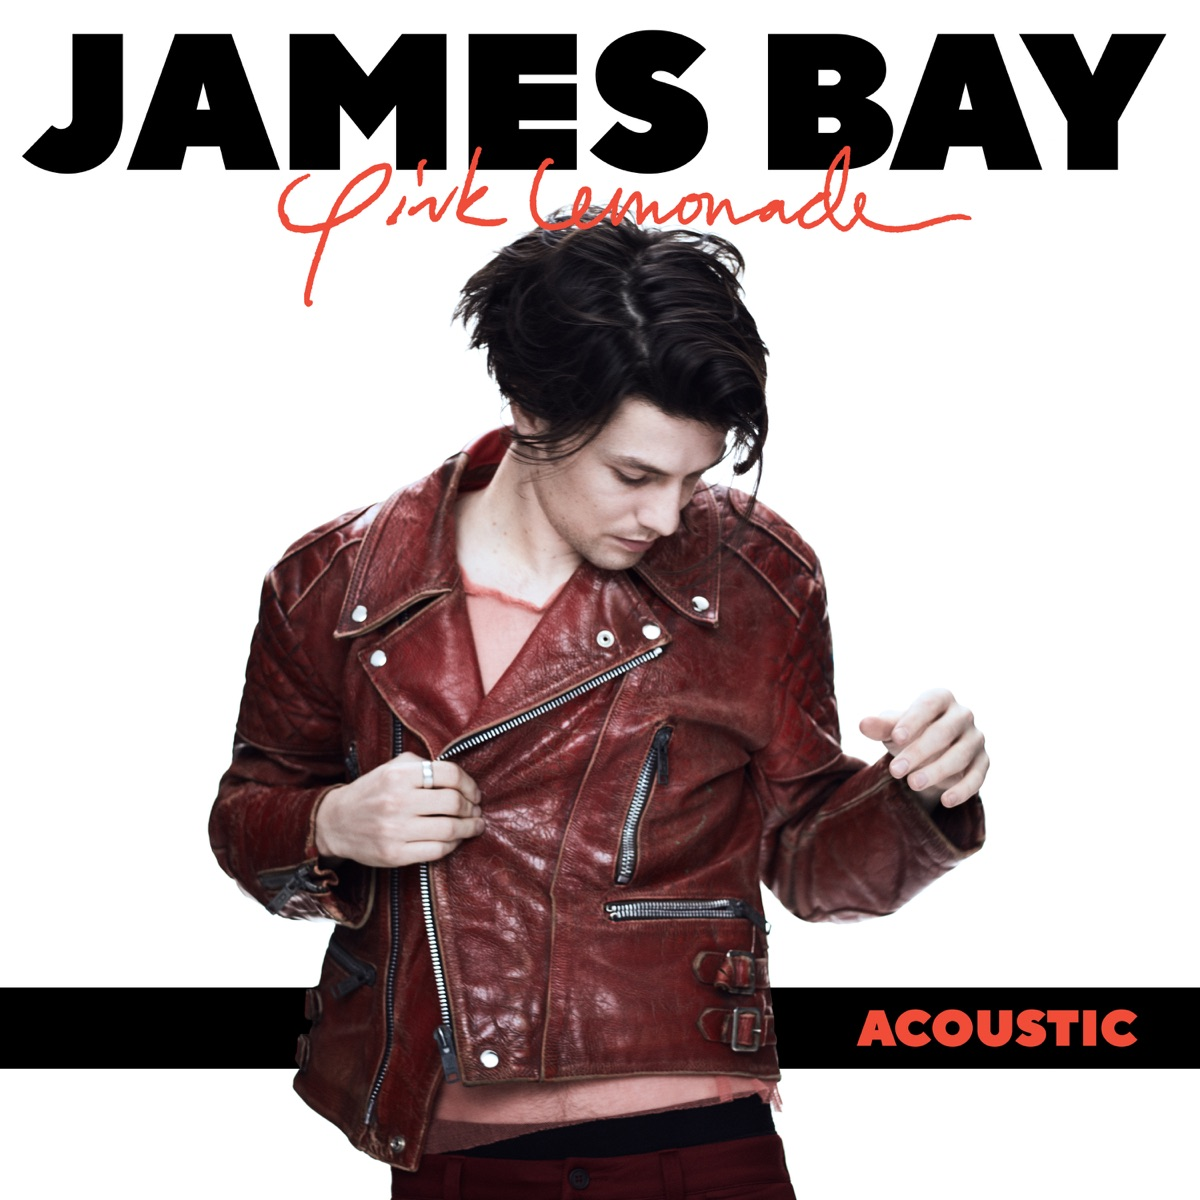 Pink Lemonade Acoustic - Single James Bay CD cover